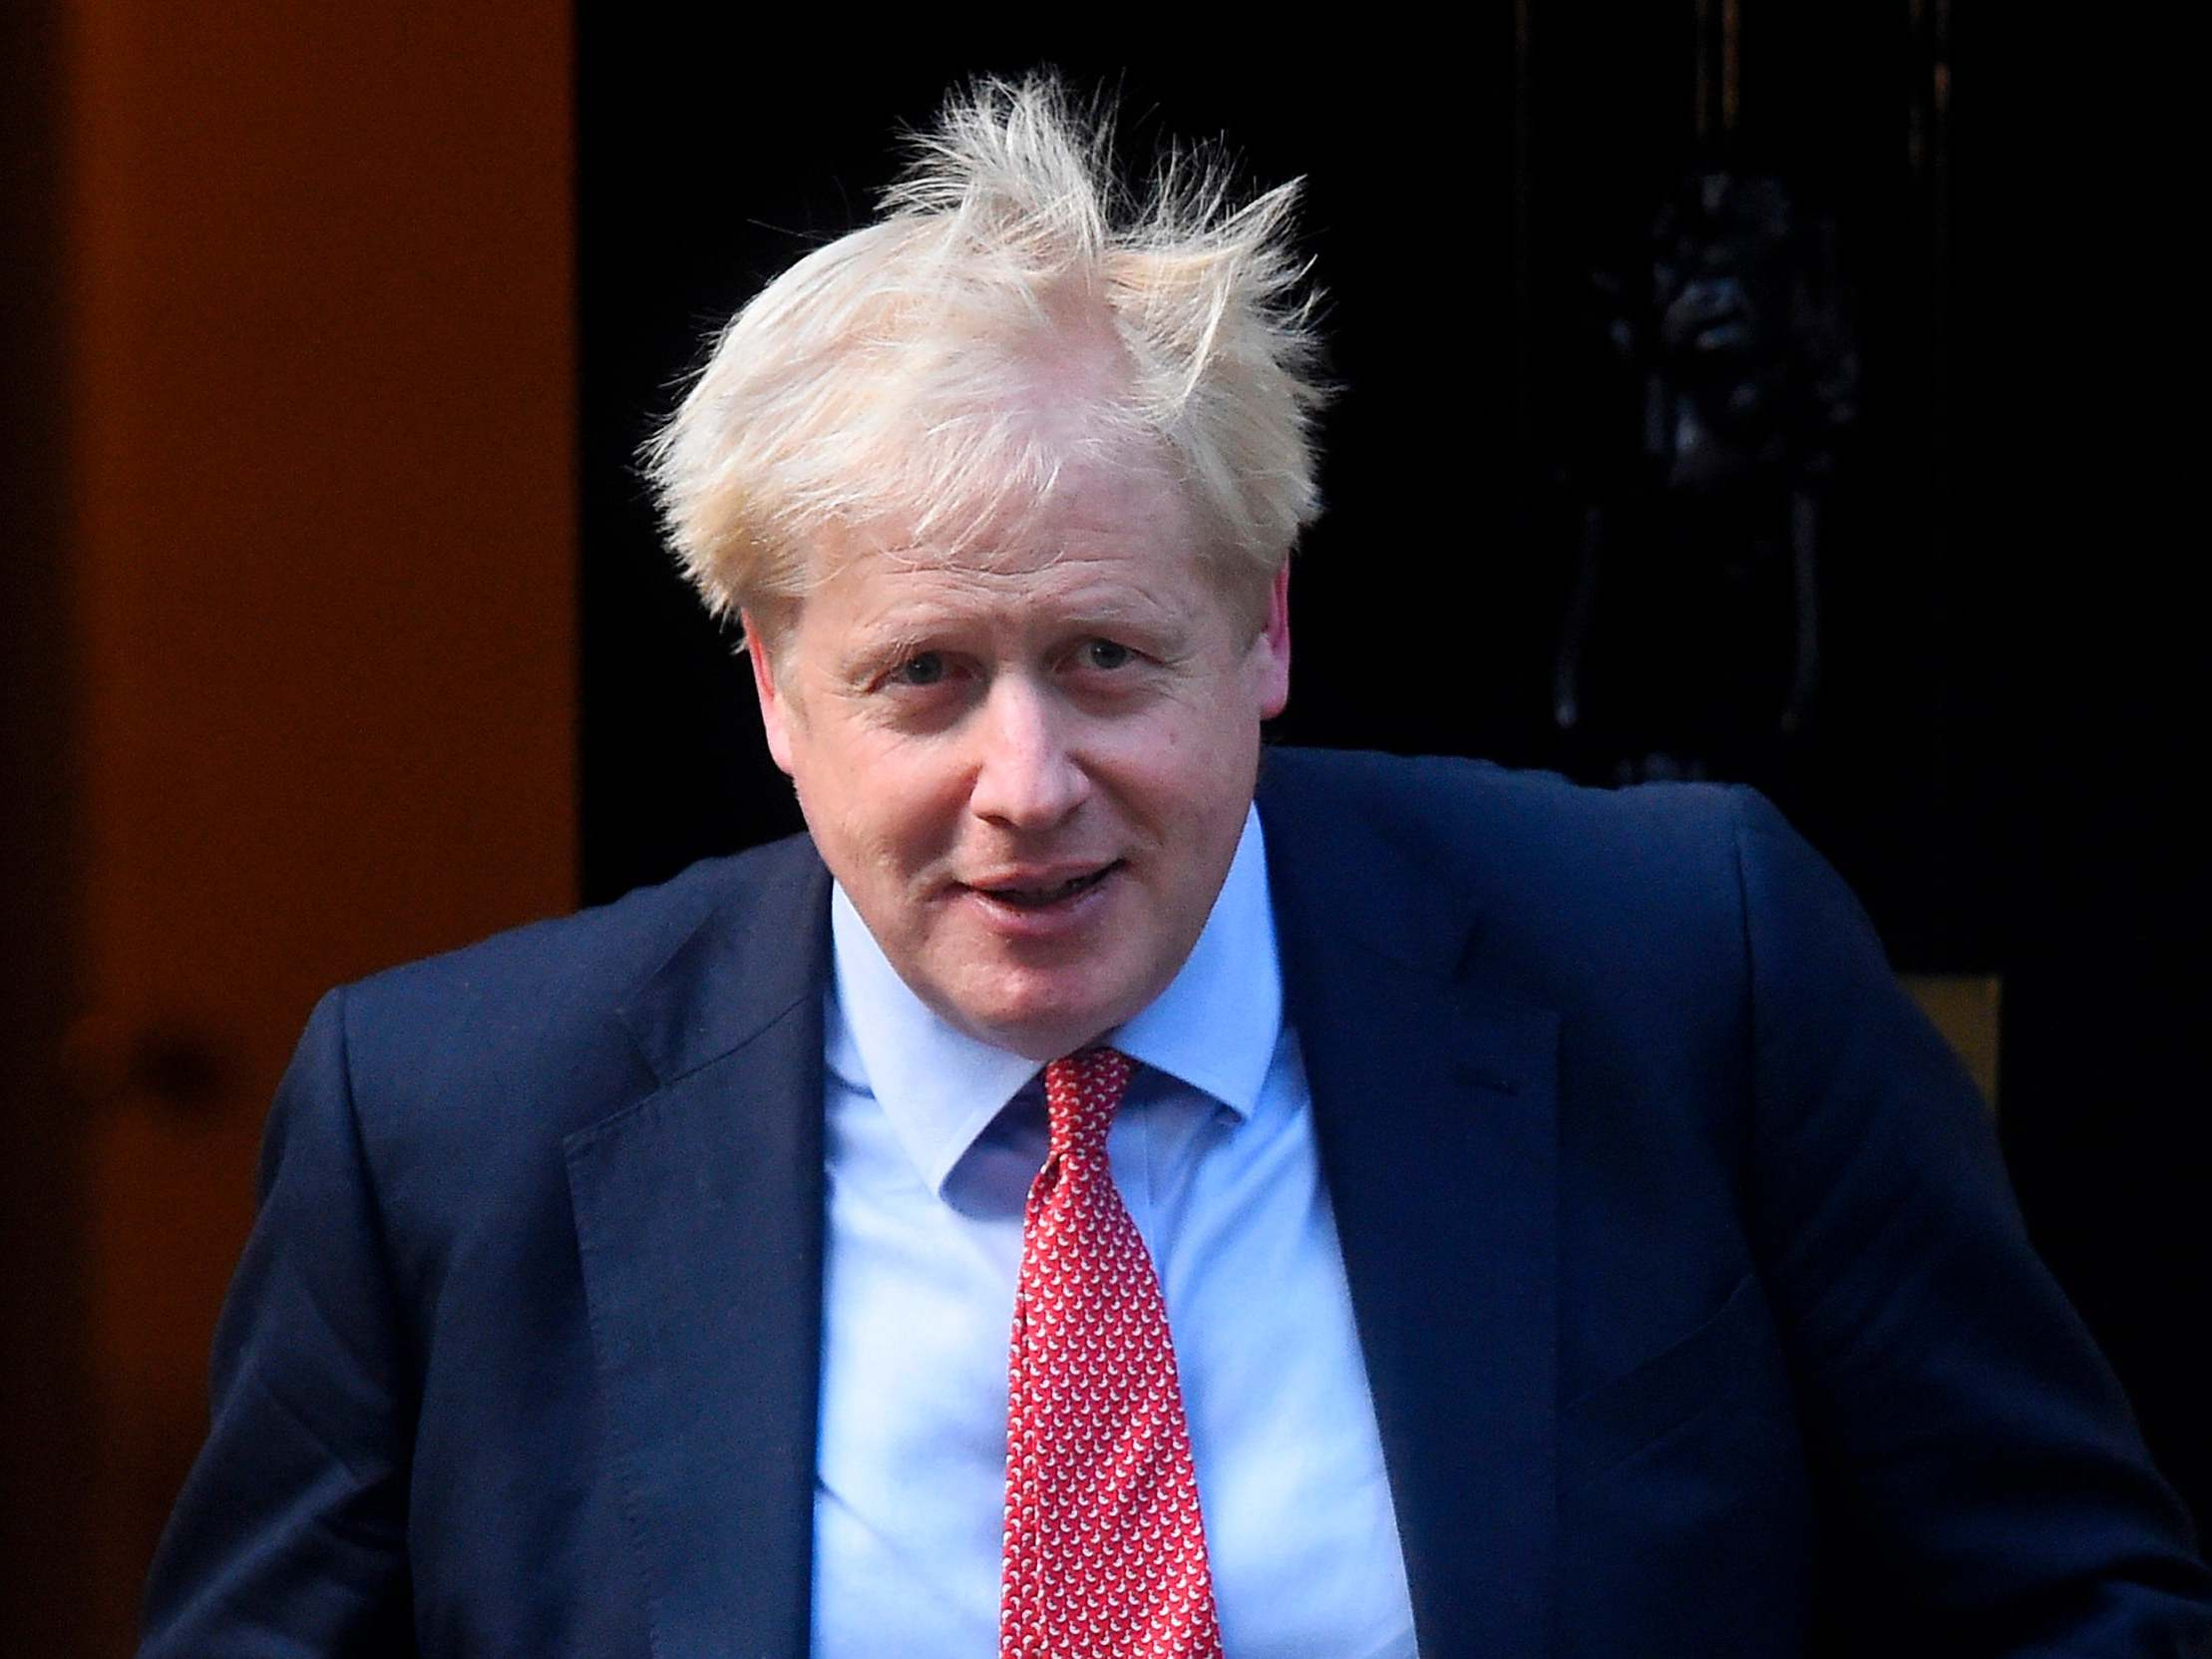 Is it not time for serious condemnation of Boris Johnson's behaviour?